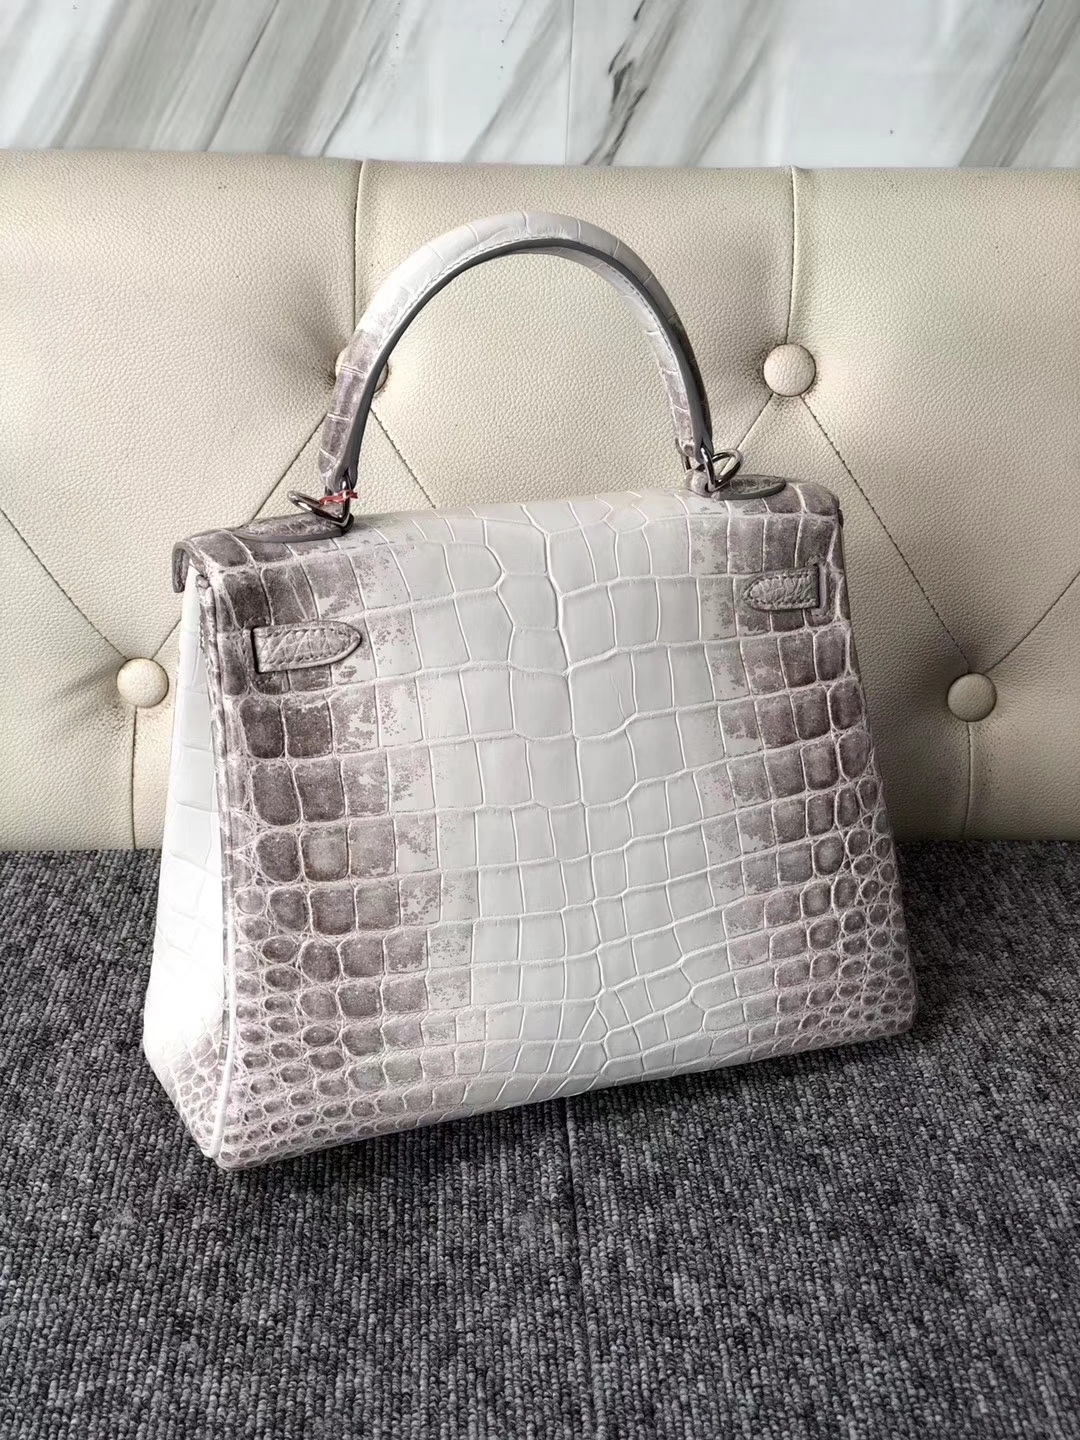 Noble Hermes Crocodile Leather Kelly25CM Tote Bag in Himalaya Silver Hardware